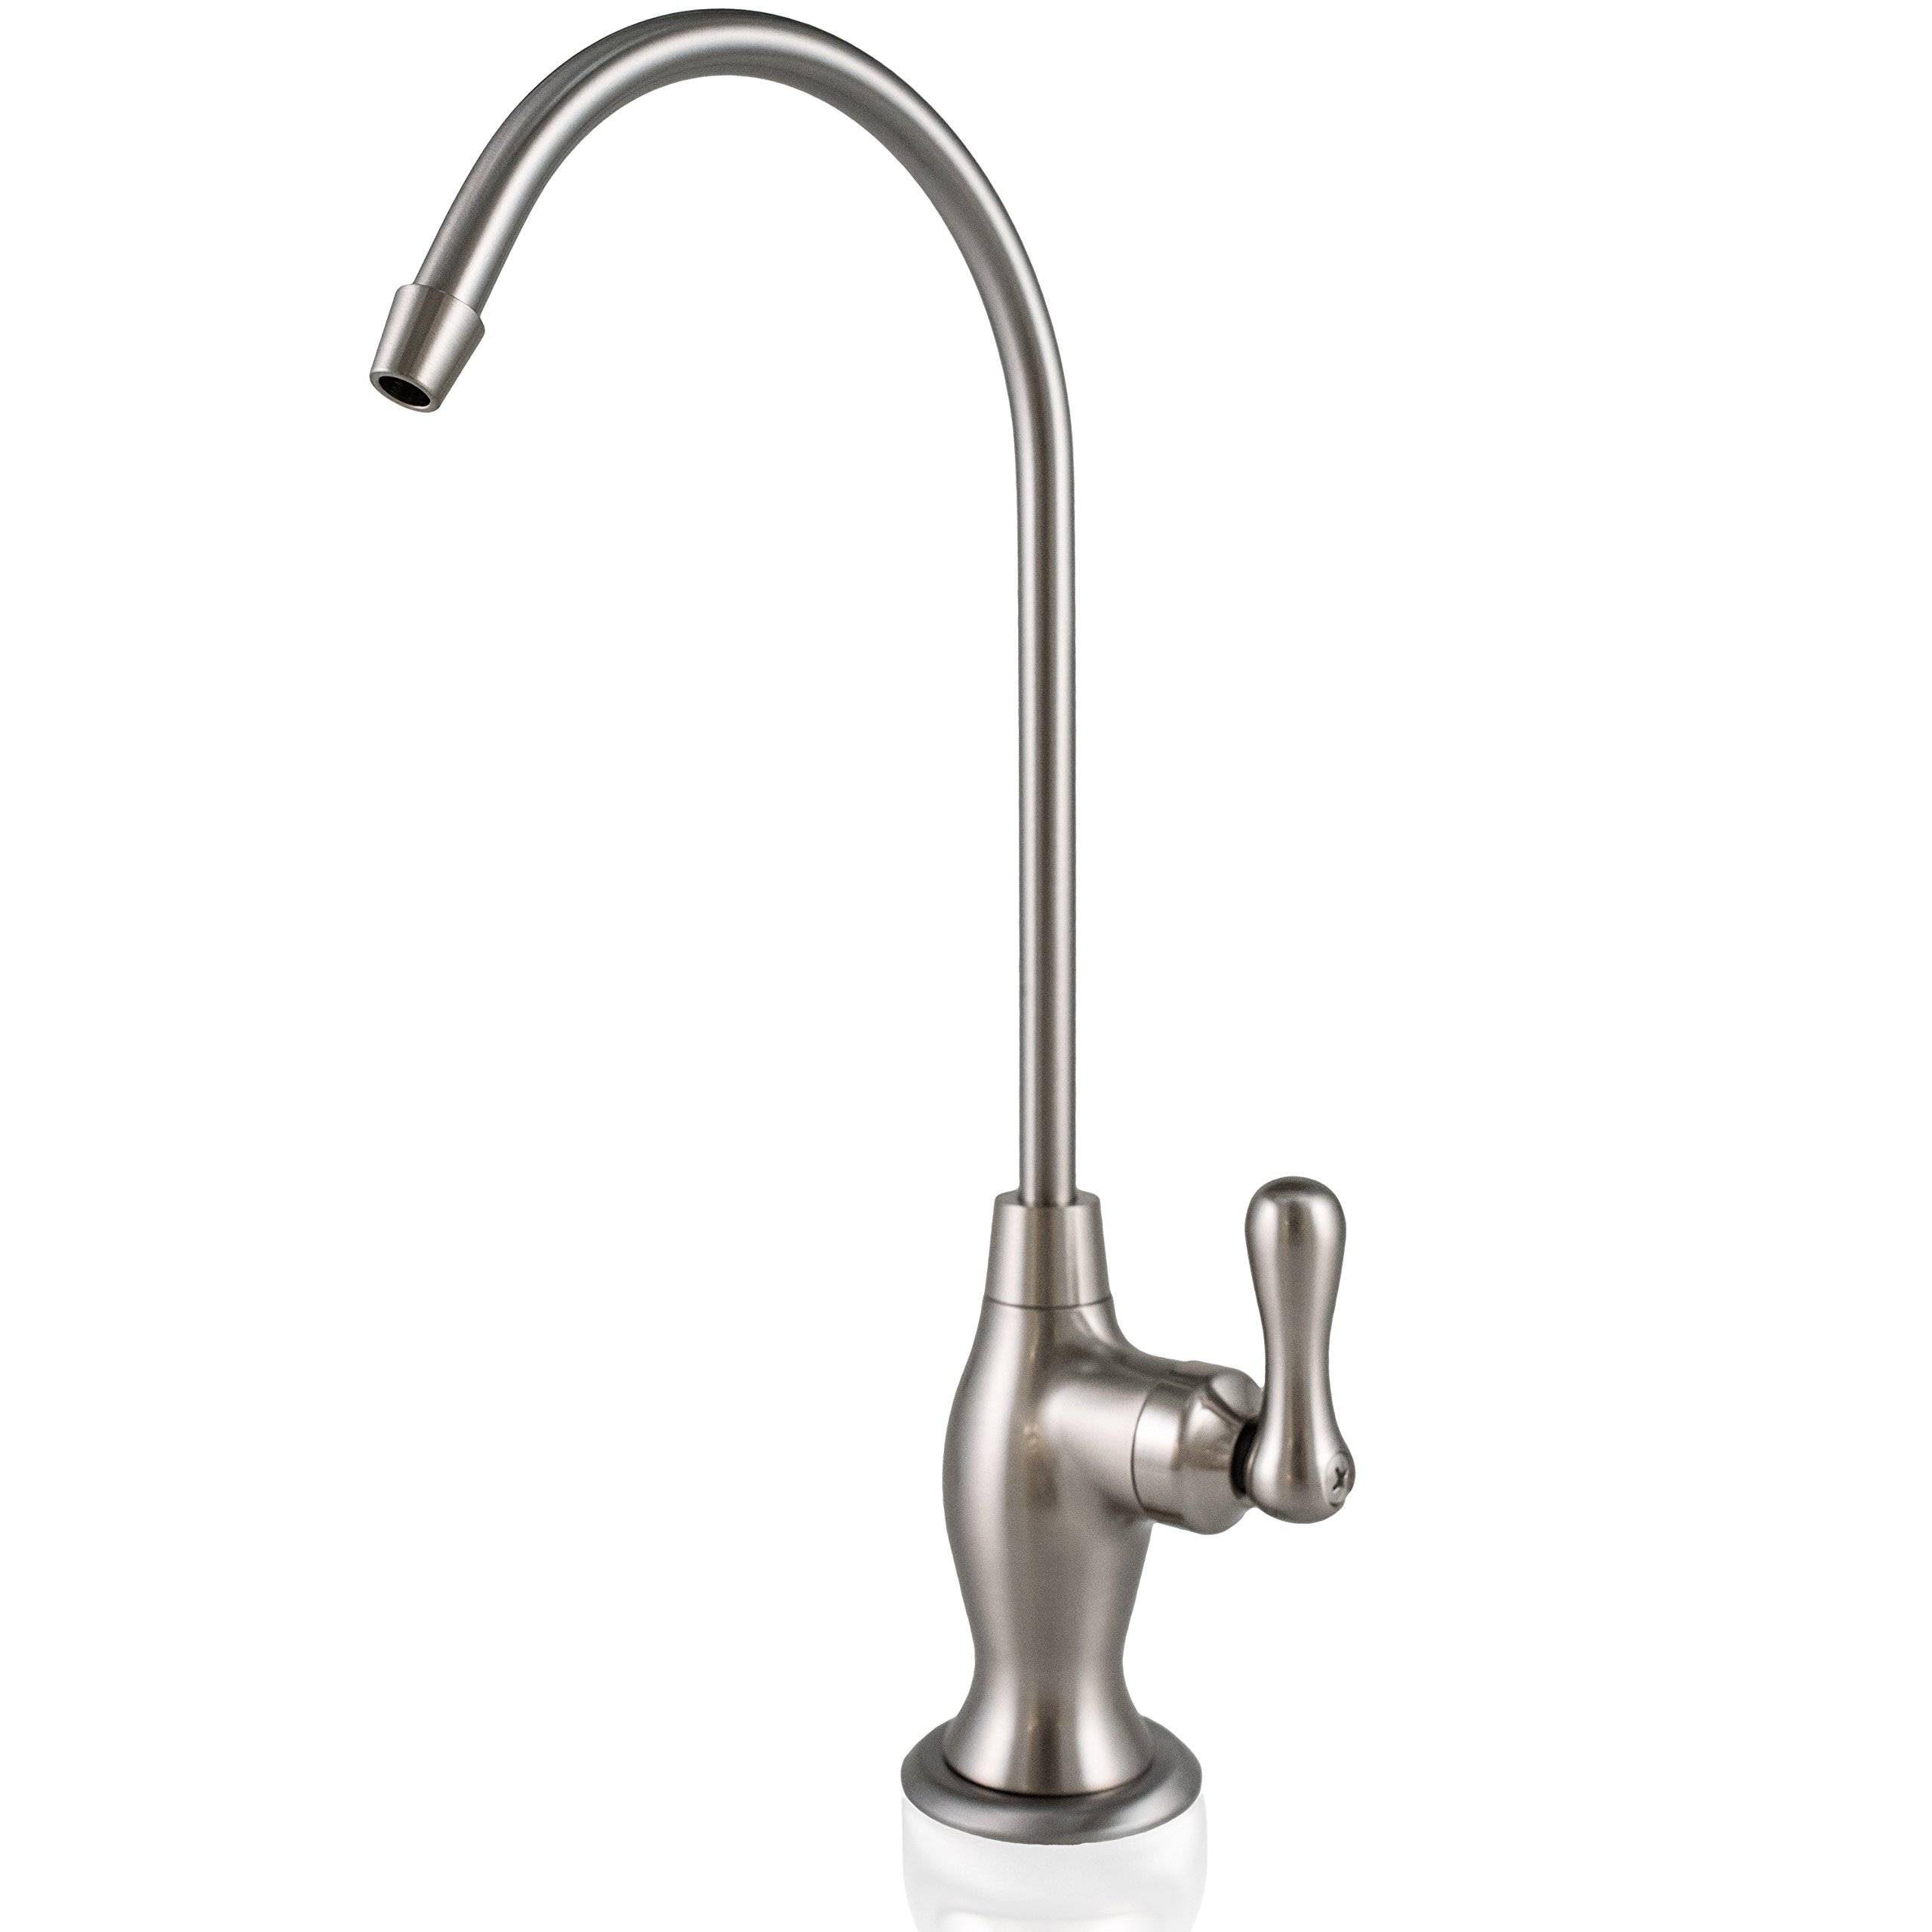 "US Aqua Heavy Duty Reverse Osmosis Drinking Water Faucet – Kitchen Bar Sink Spout with 1/4"" Connection (Brushed Nickel Bottle Style)"